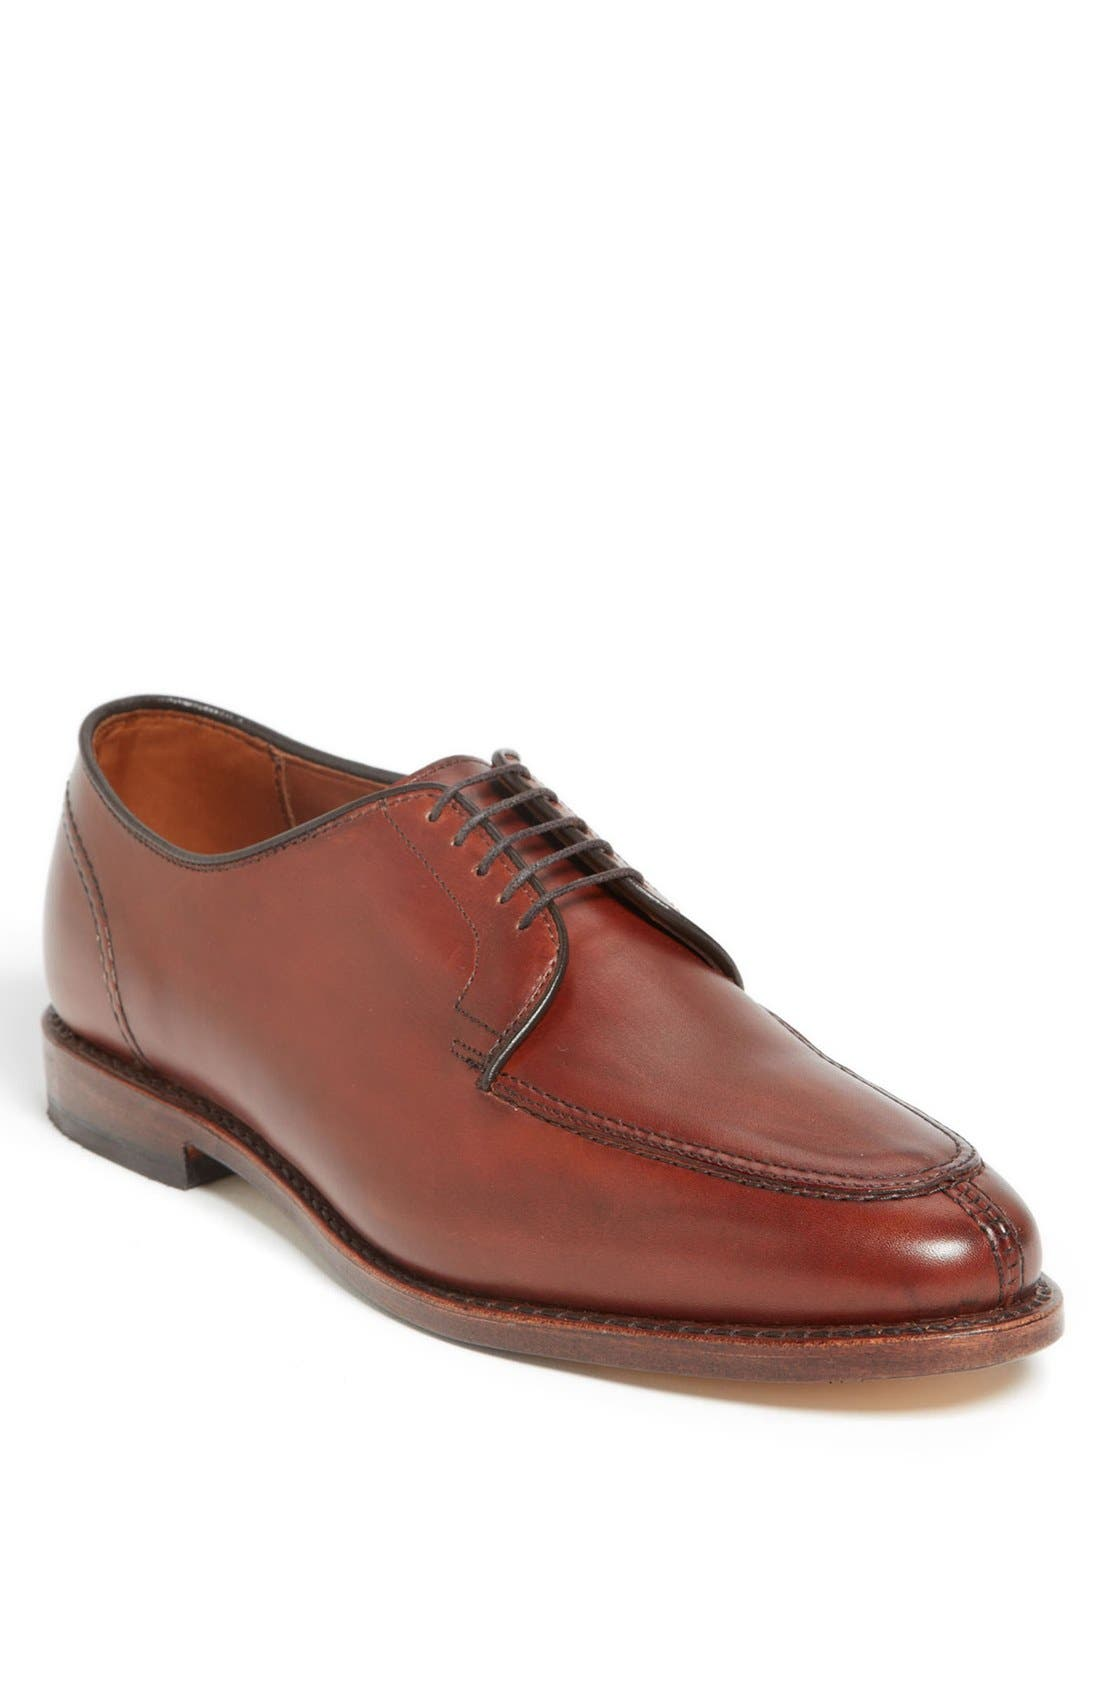 Alternate Image 1 Selected - Allen Edmonds 'LaSalle' Split Toe Blucher (Men)